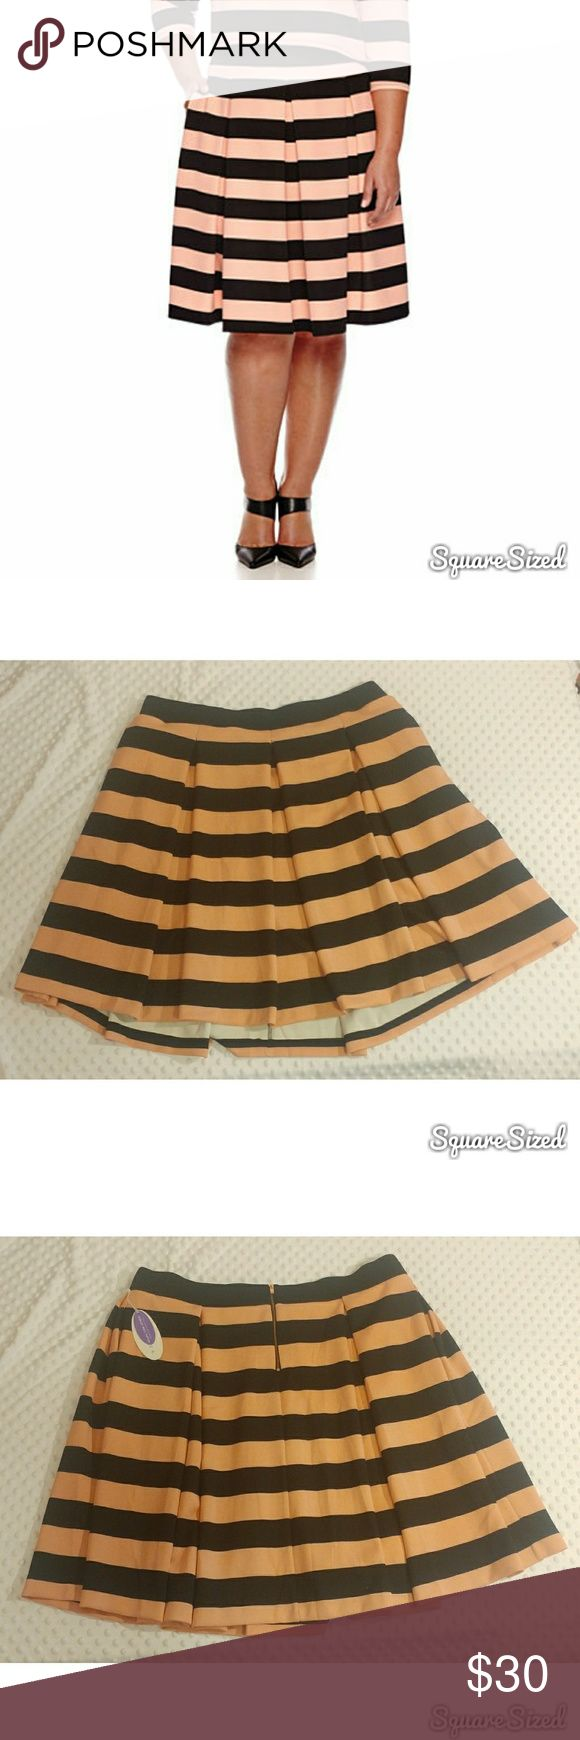 Ashley Tipton skirt Ashley Tipton for JCP pink/black striped skirt (pic 1.is accurate color rep). Size 2x.   New with tags  Waist 42in with lots of stretch Length 25in Skirts